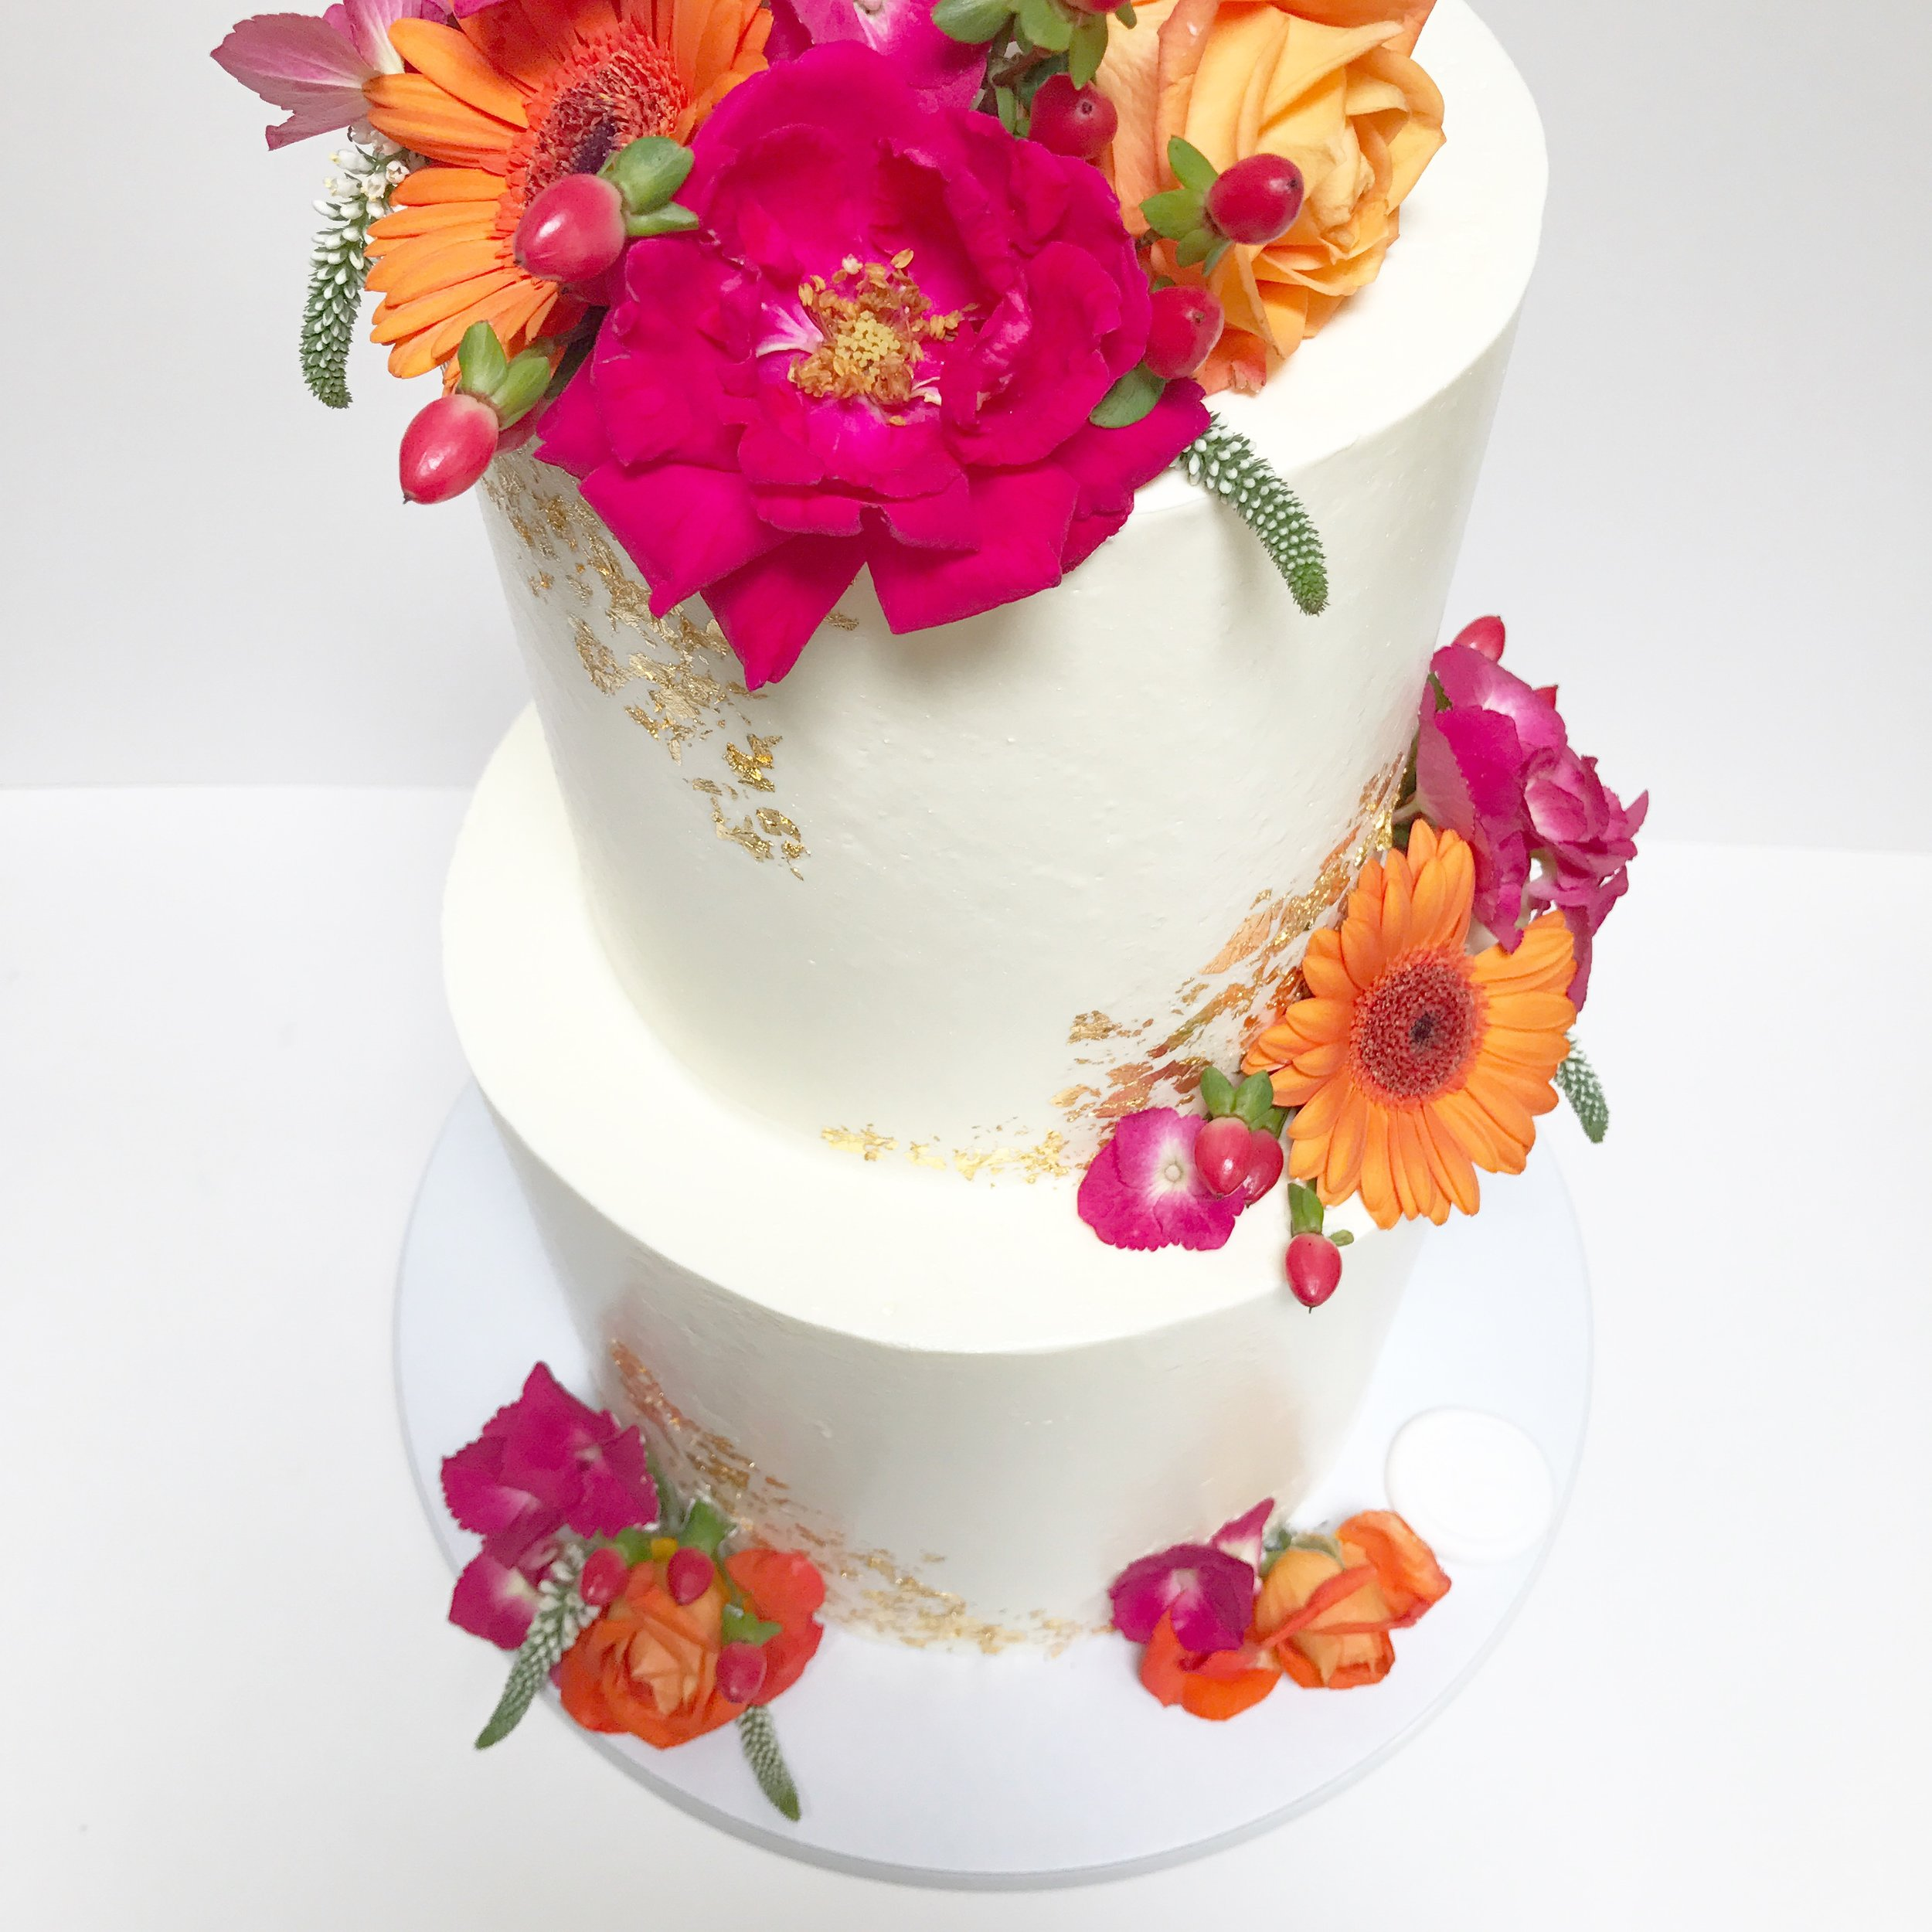 Vibrant flowers on white cake.JPG